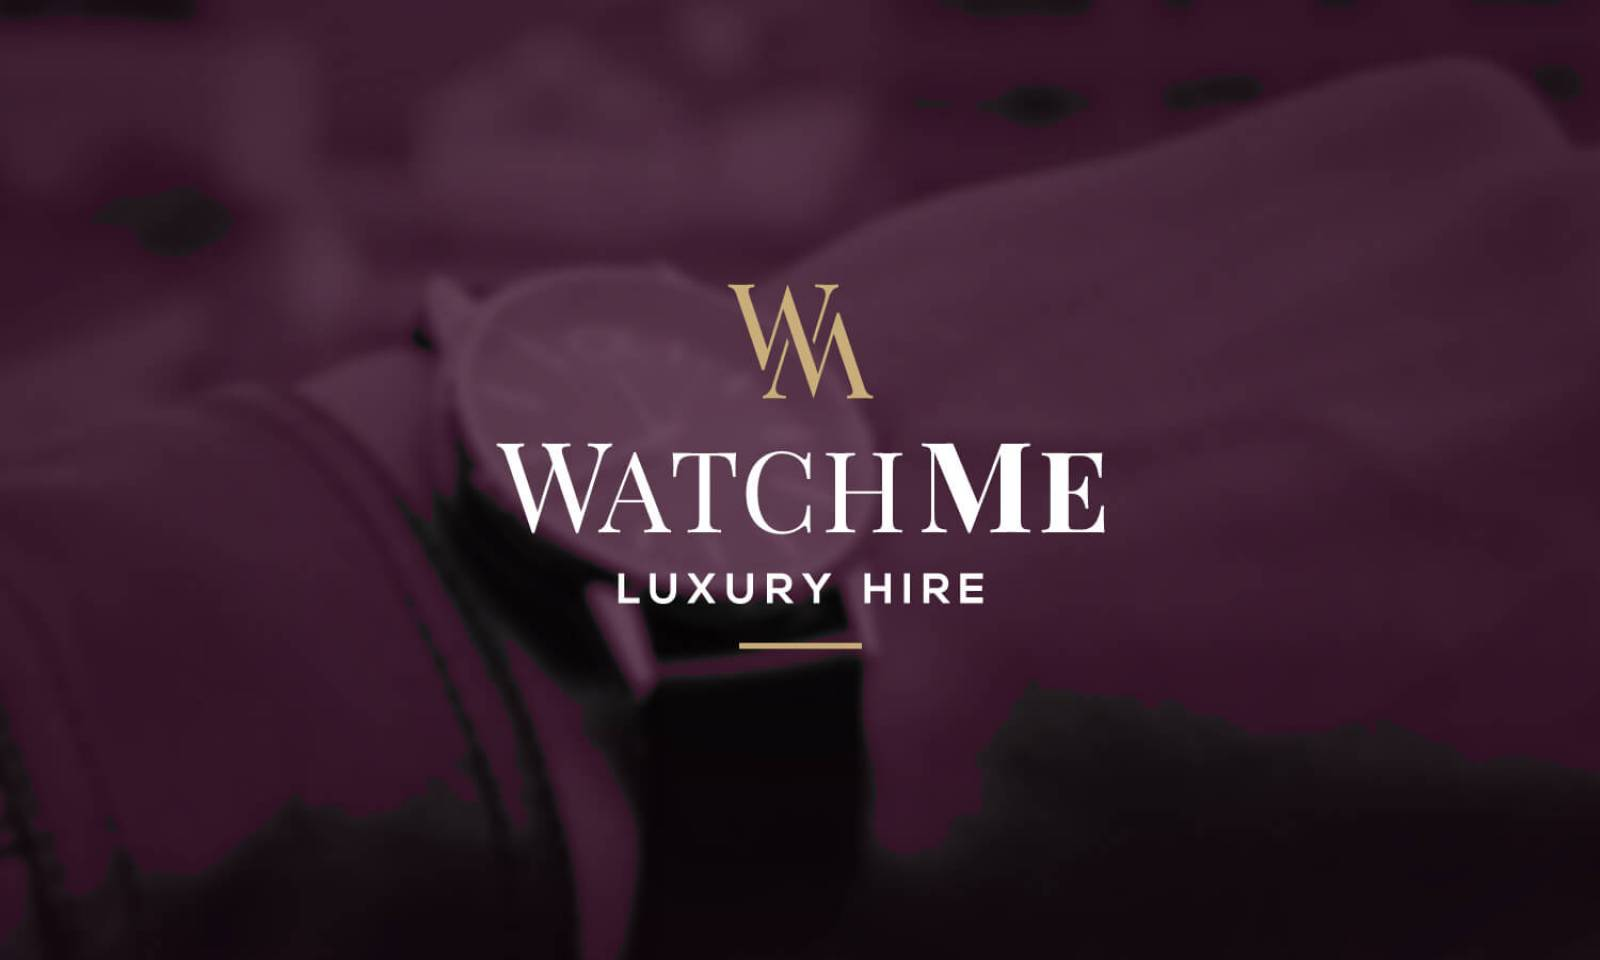 Watchme-logo-3-corporate-identity-agency-graphic-design-canterbury.jpg